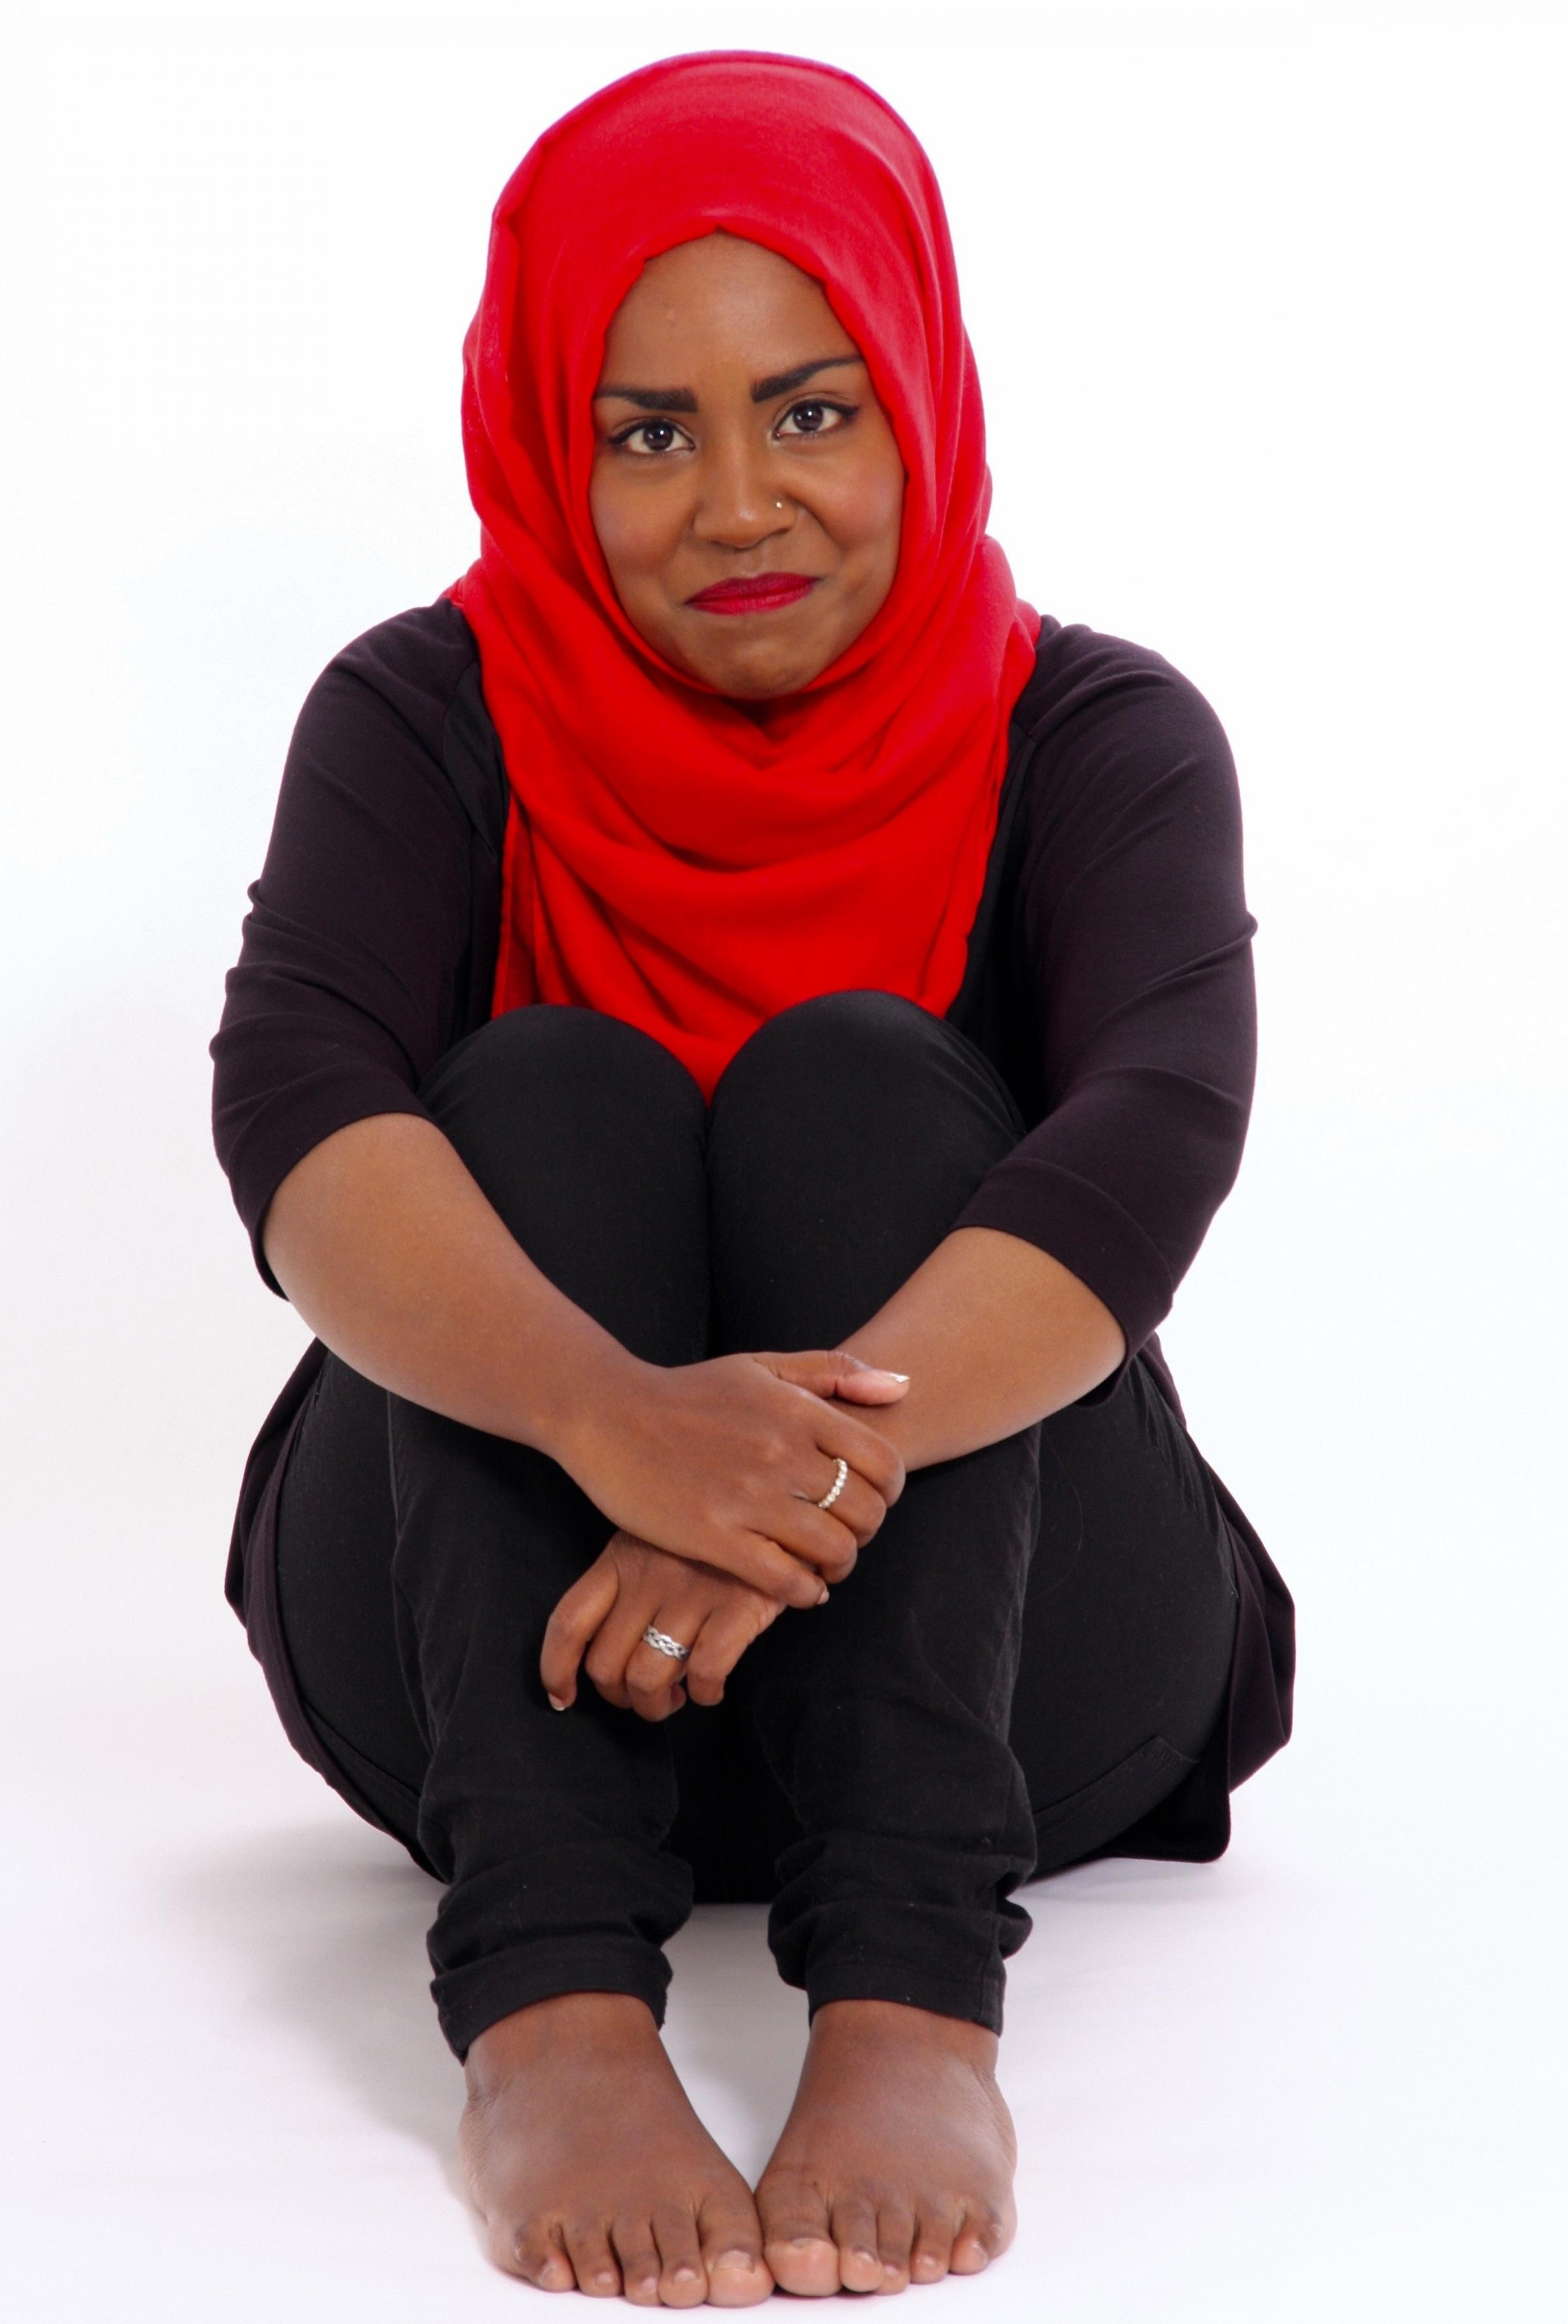 Nadiya Hussein, winner of the 2015 Great British Bake Off, who will be at this month's Bradford Literature Festival